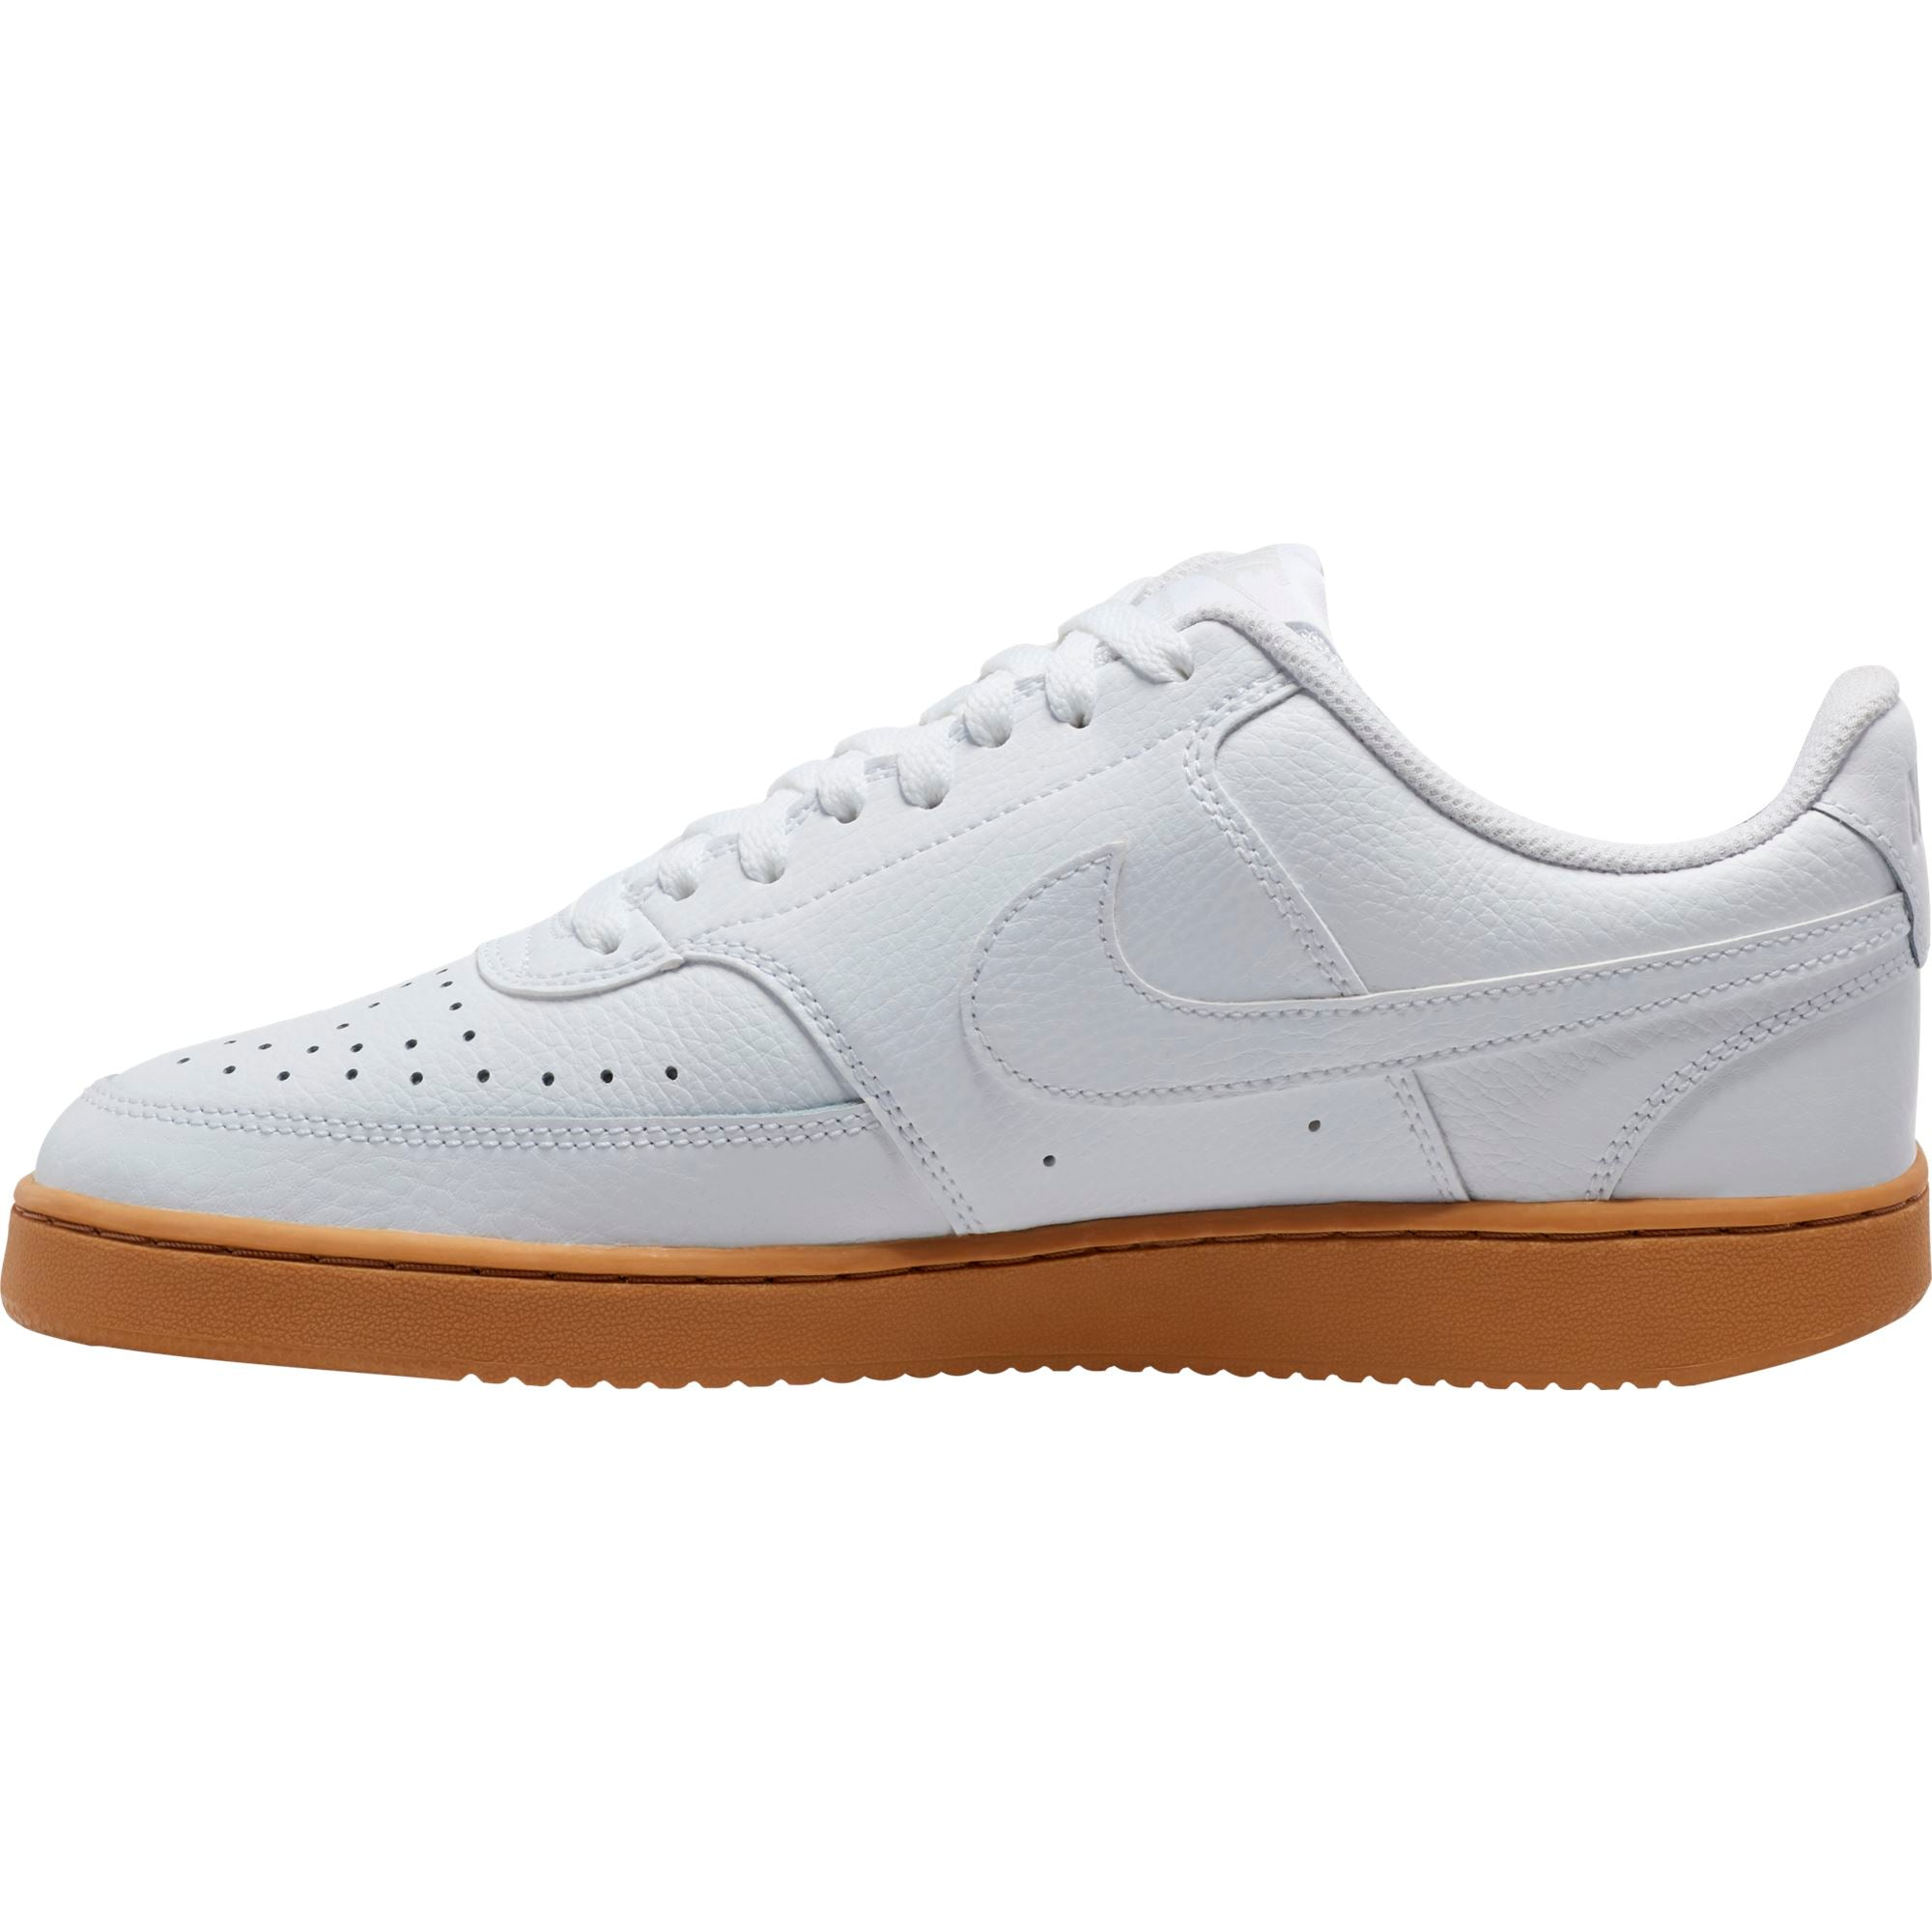 Nike Mens Court Vision Low - White/White-Photon Dust/Gum Light Brown SP-Footwear-Mens Nike